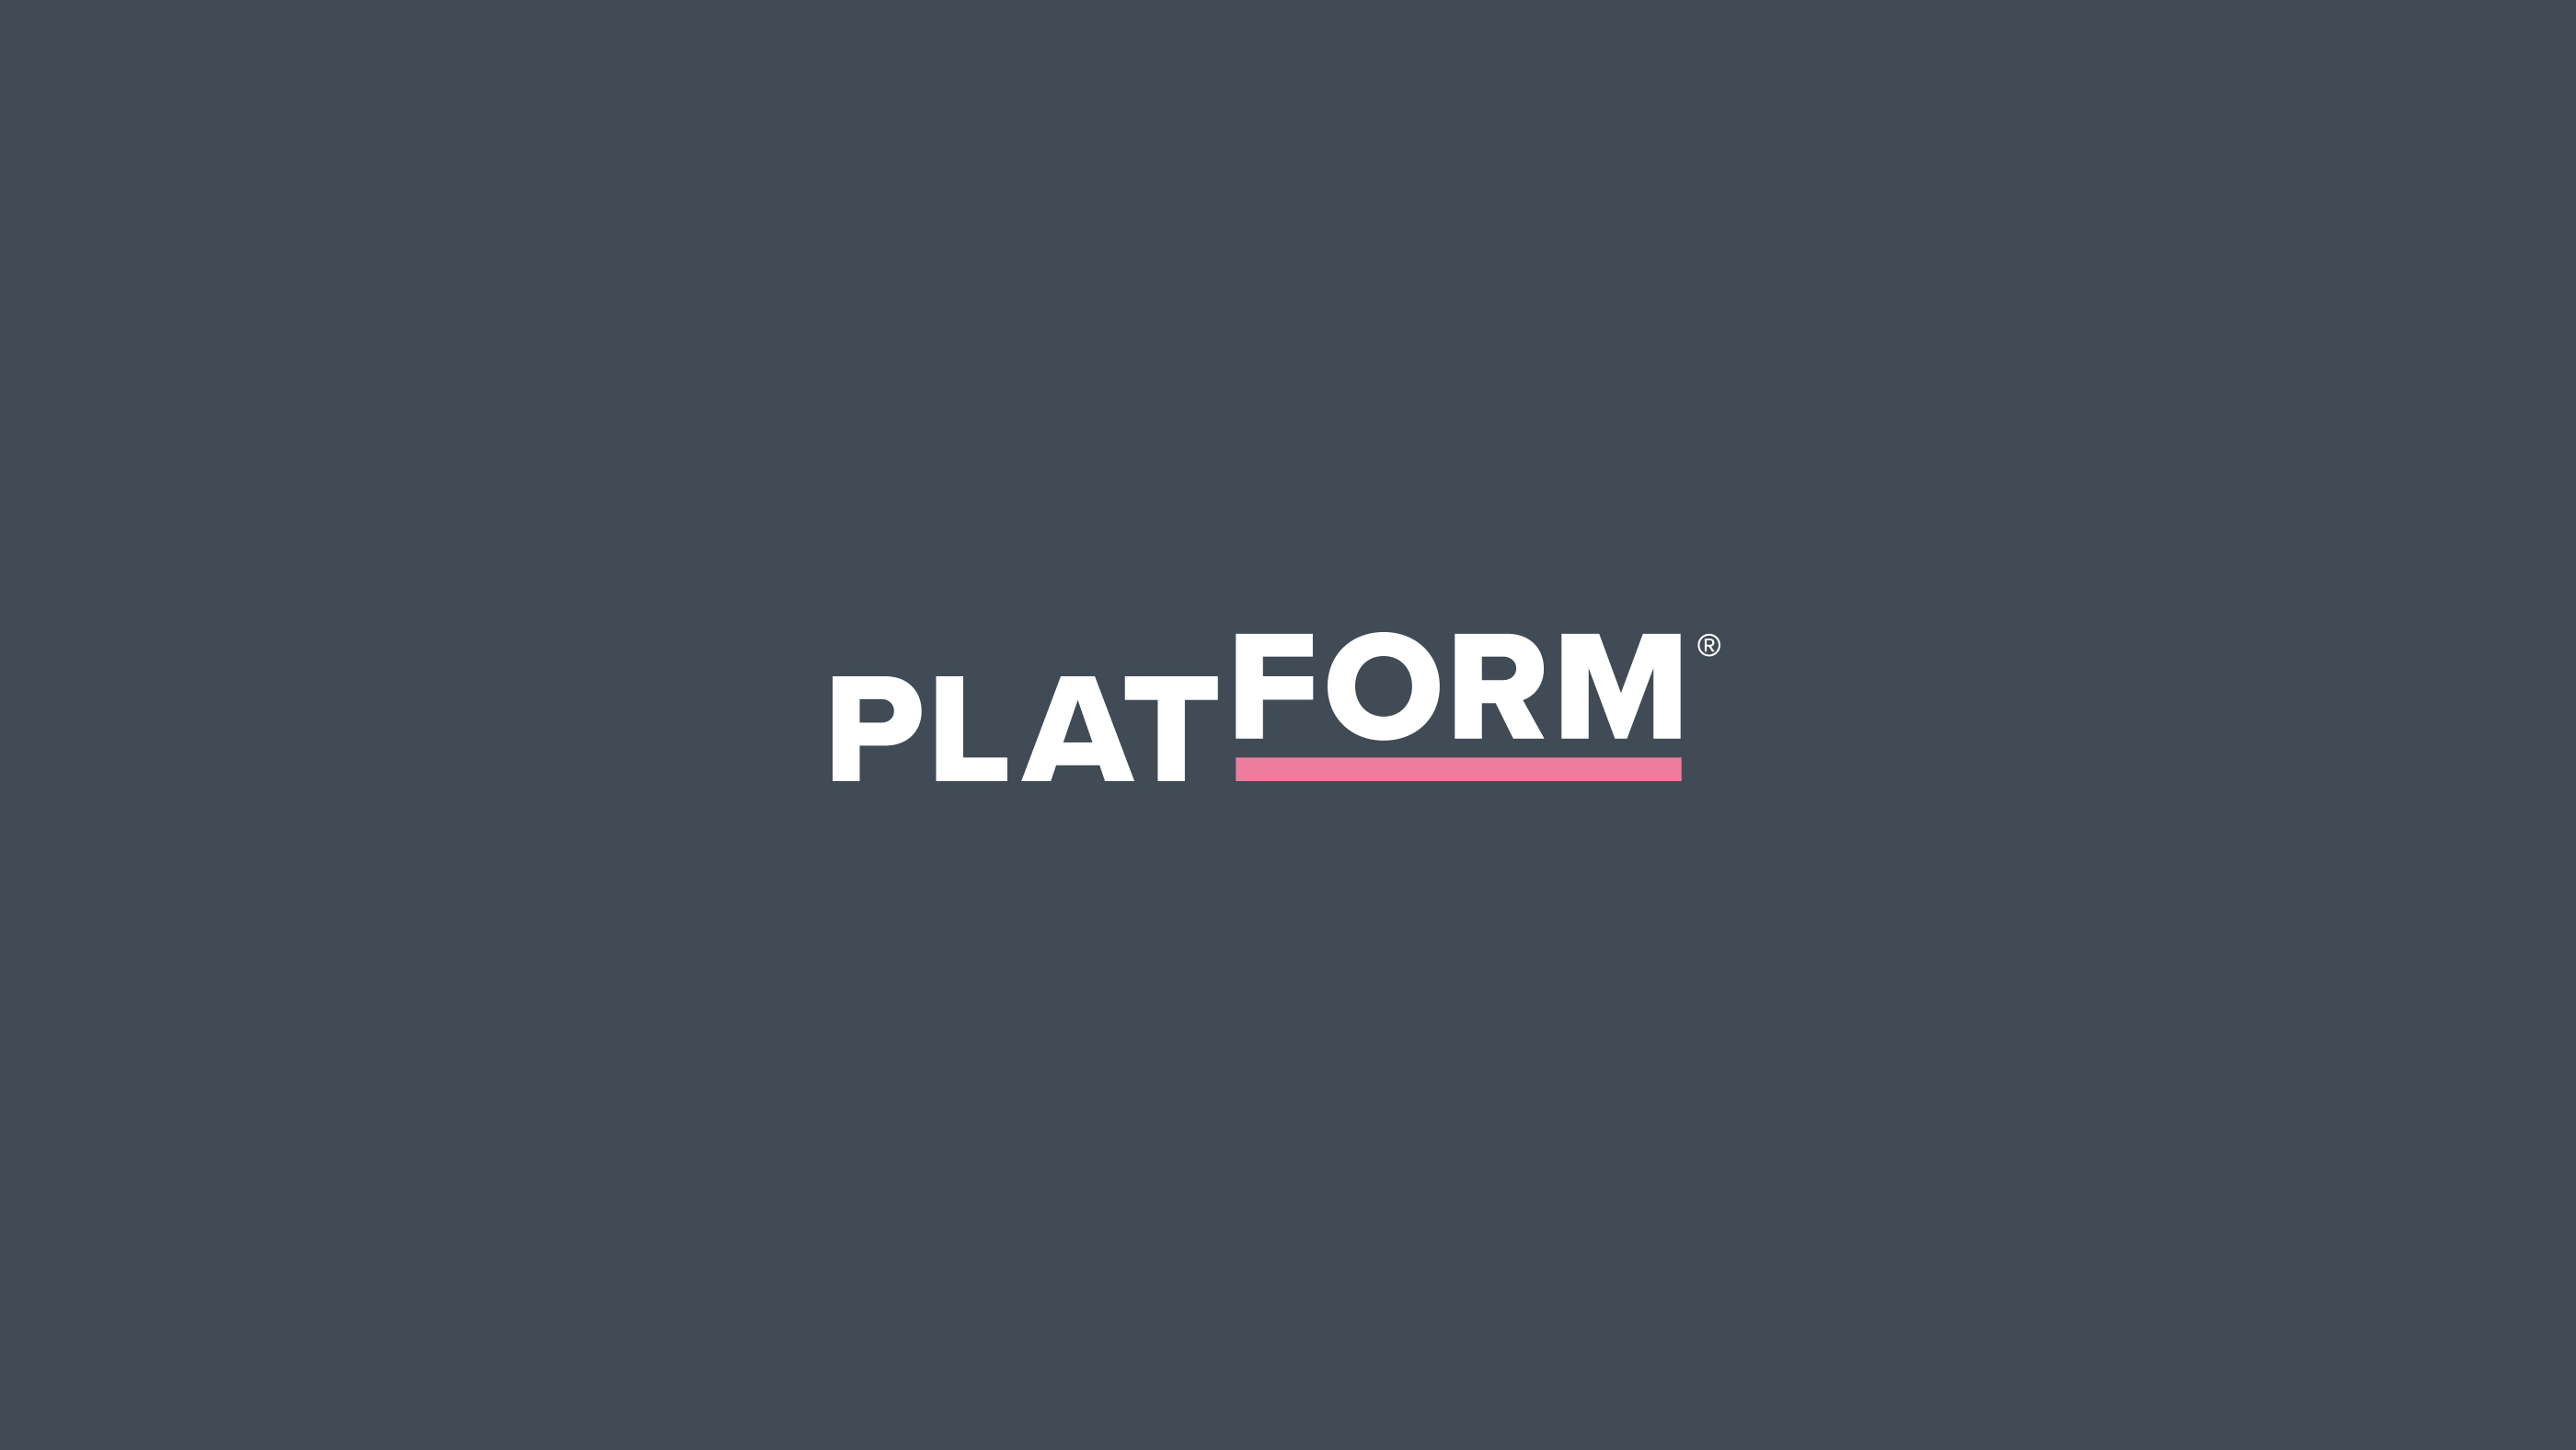 The Westminster School Platform brand identity, white text on grey background with pink underline